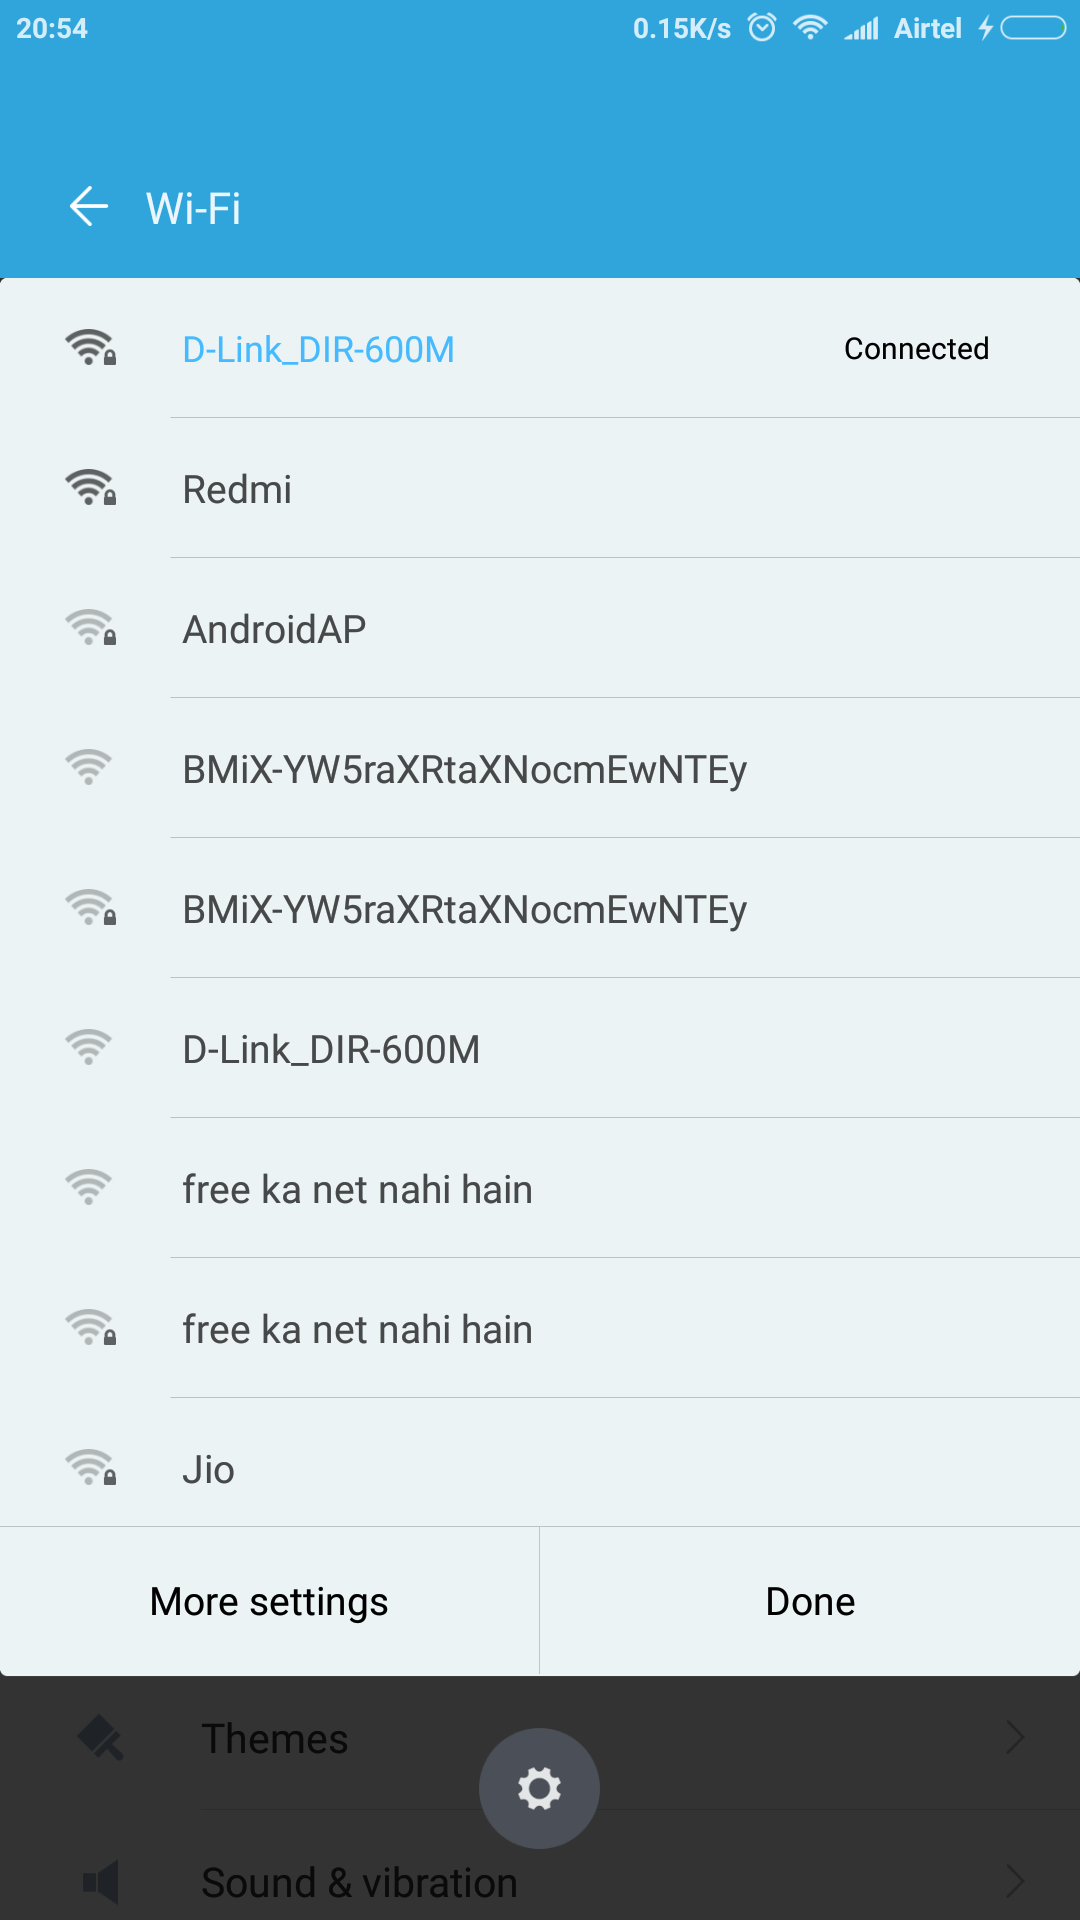 Never use Open WiFi Networks